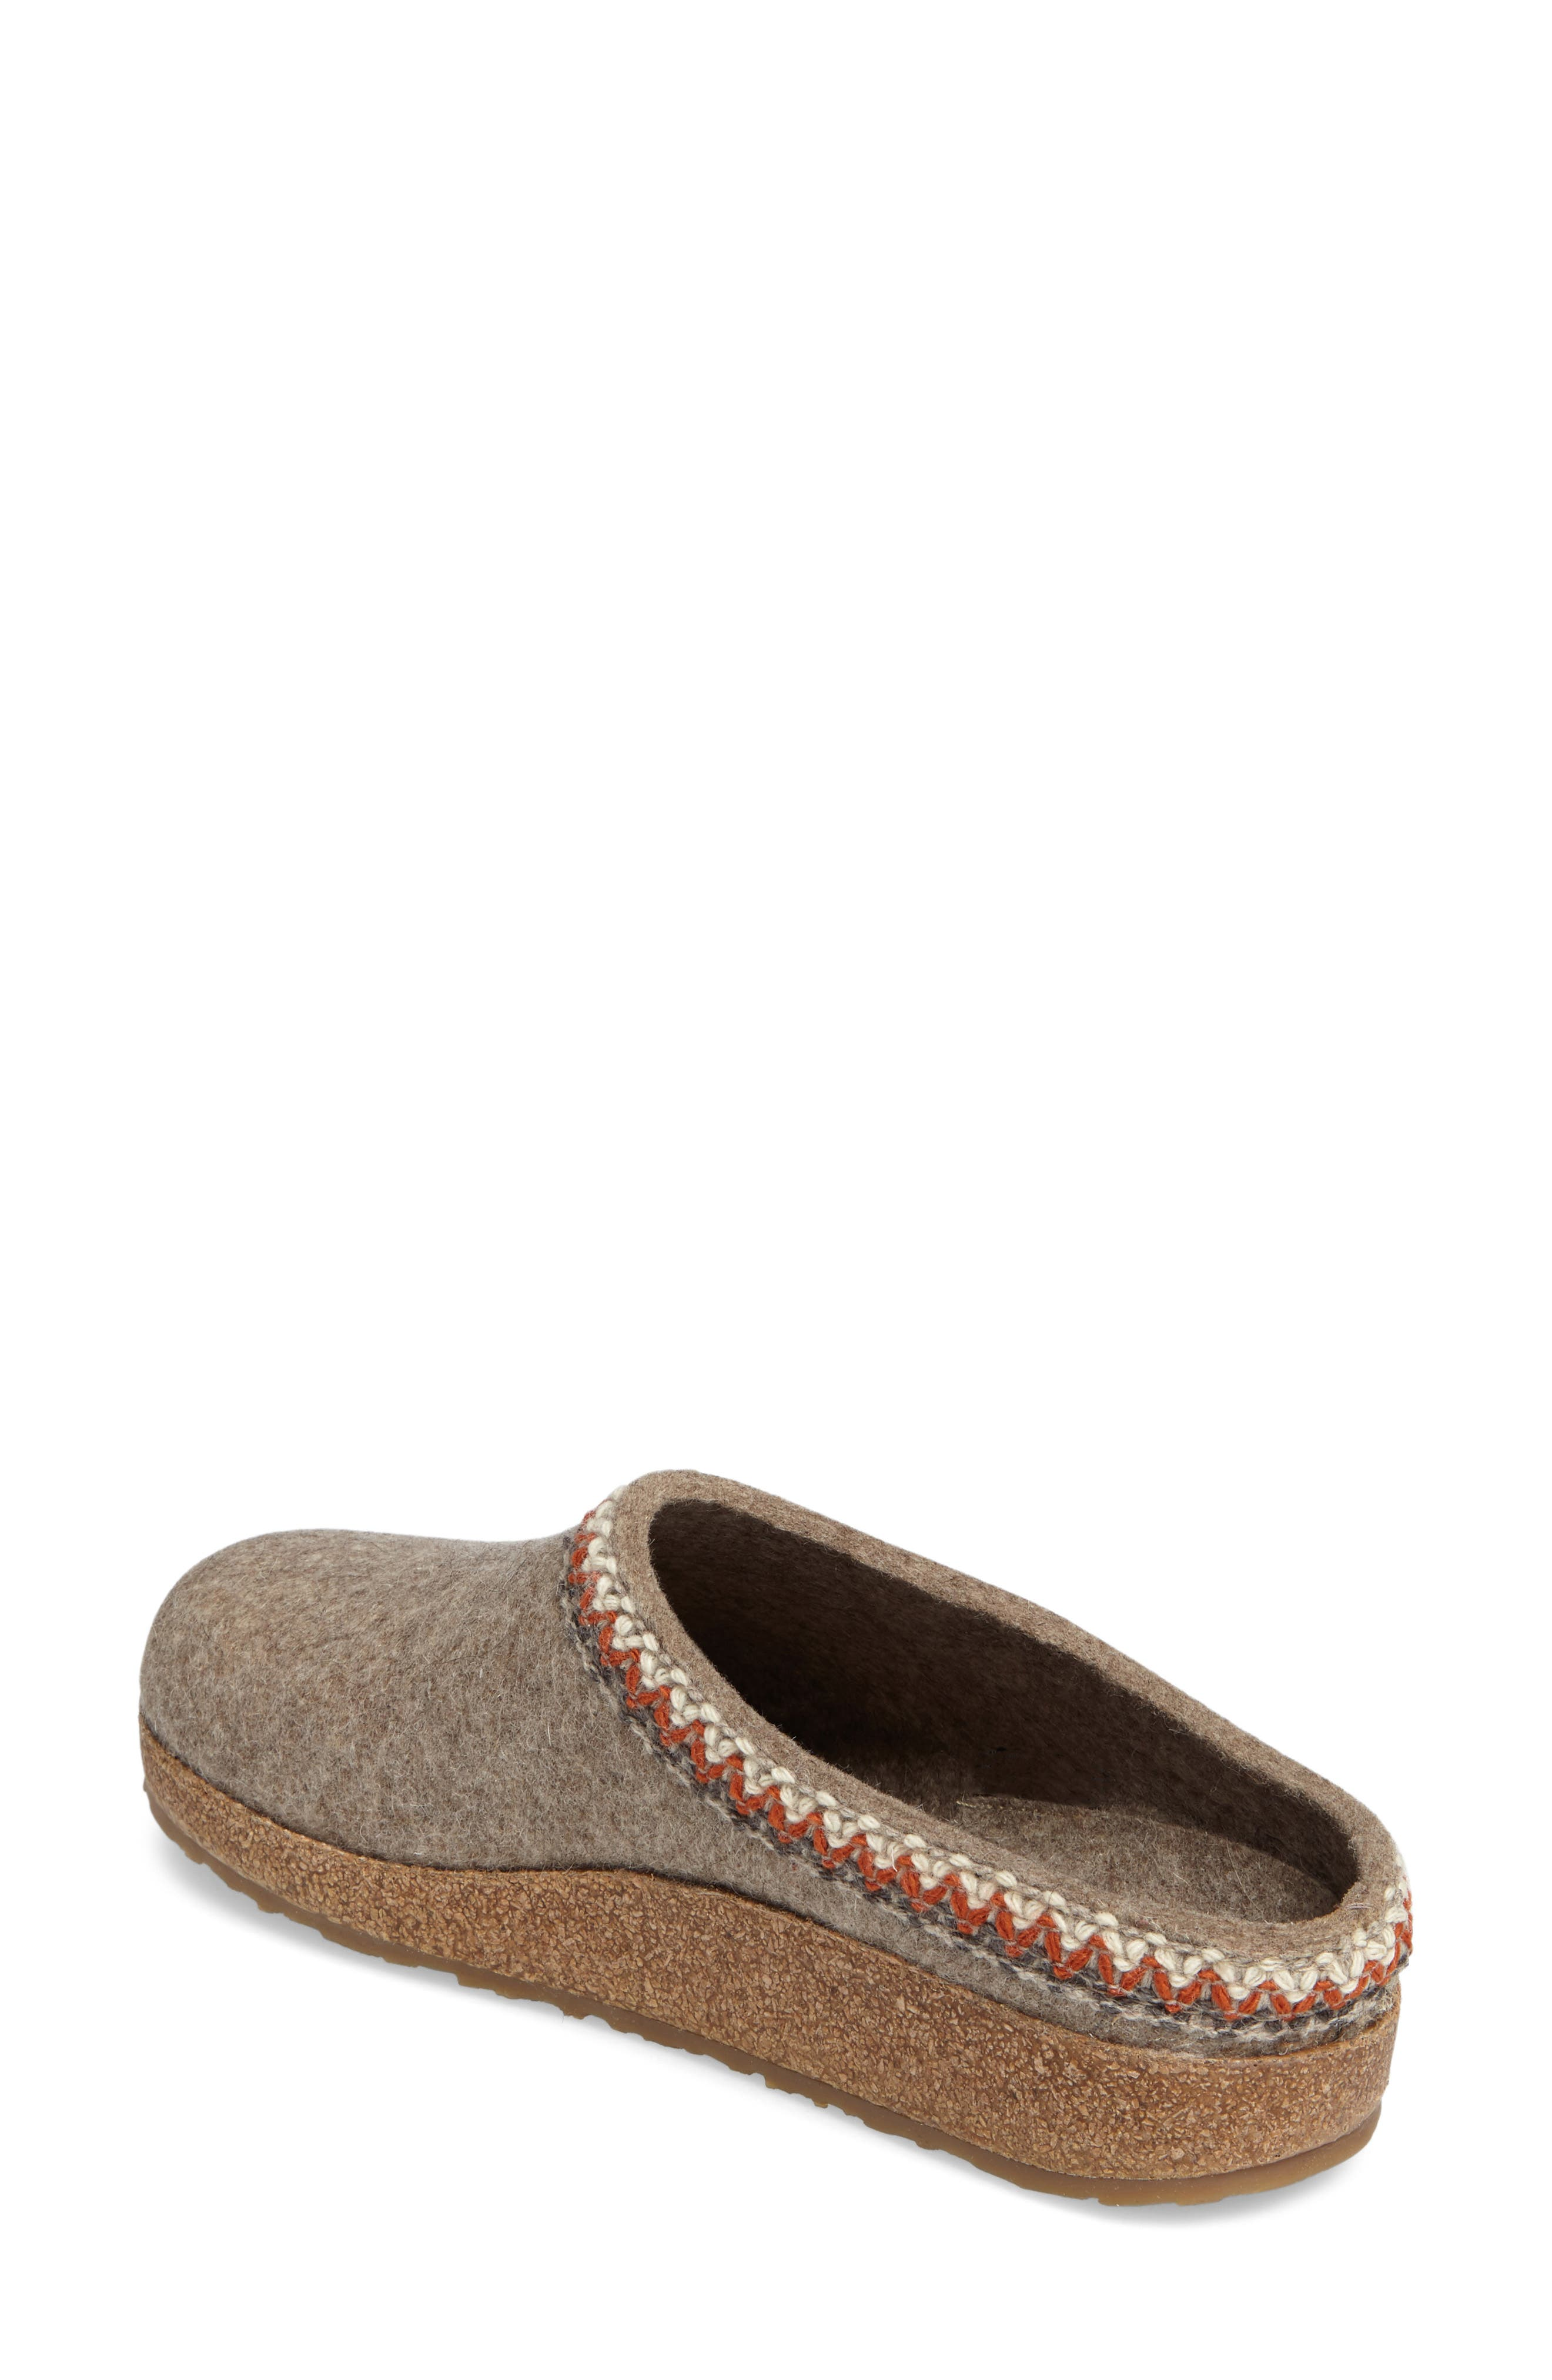 Zigzag Slipper,                             Alternate thumbnail 7, color,